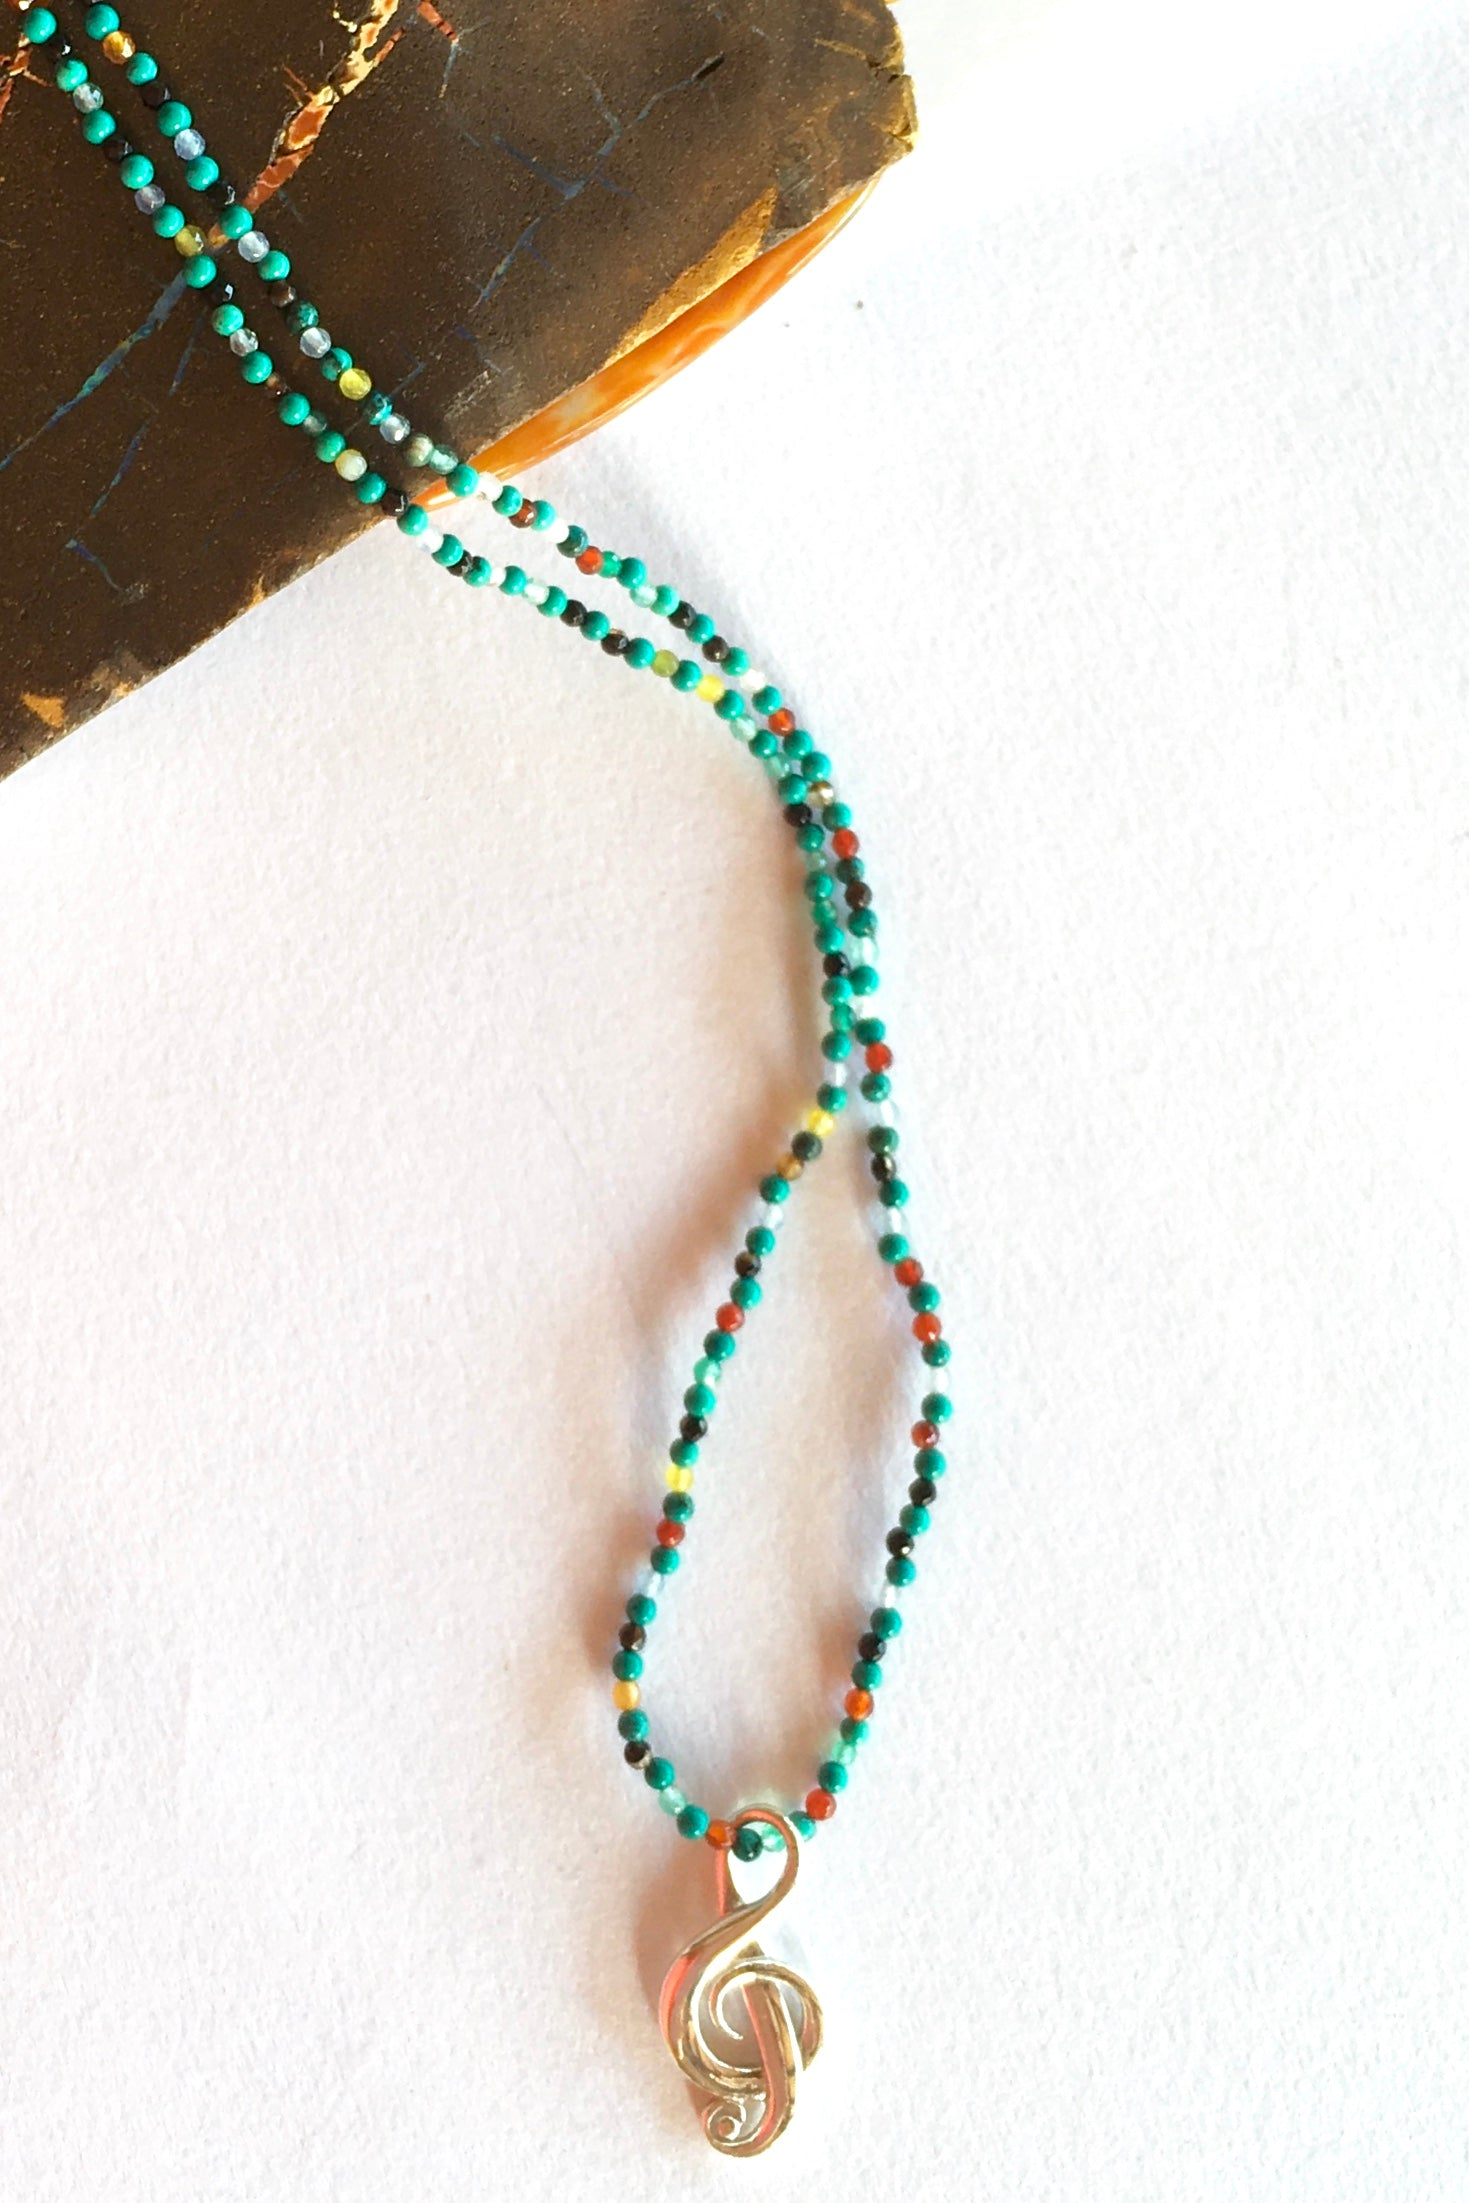 Necklace Cay Music on Gemstone and Turquoise Chain